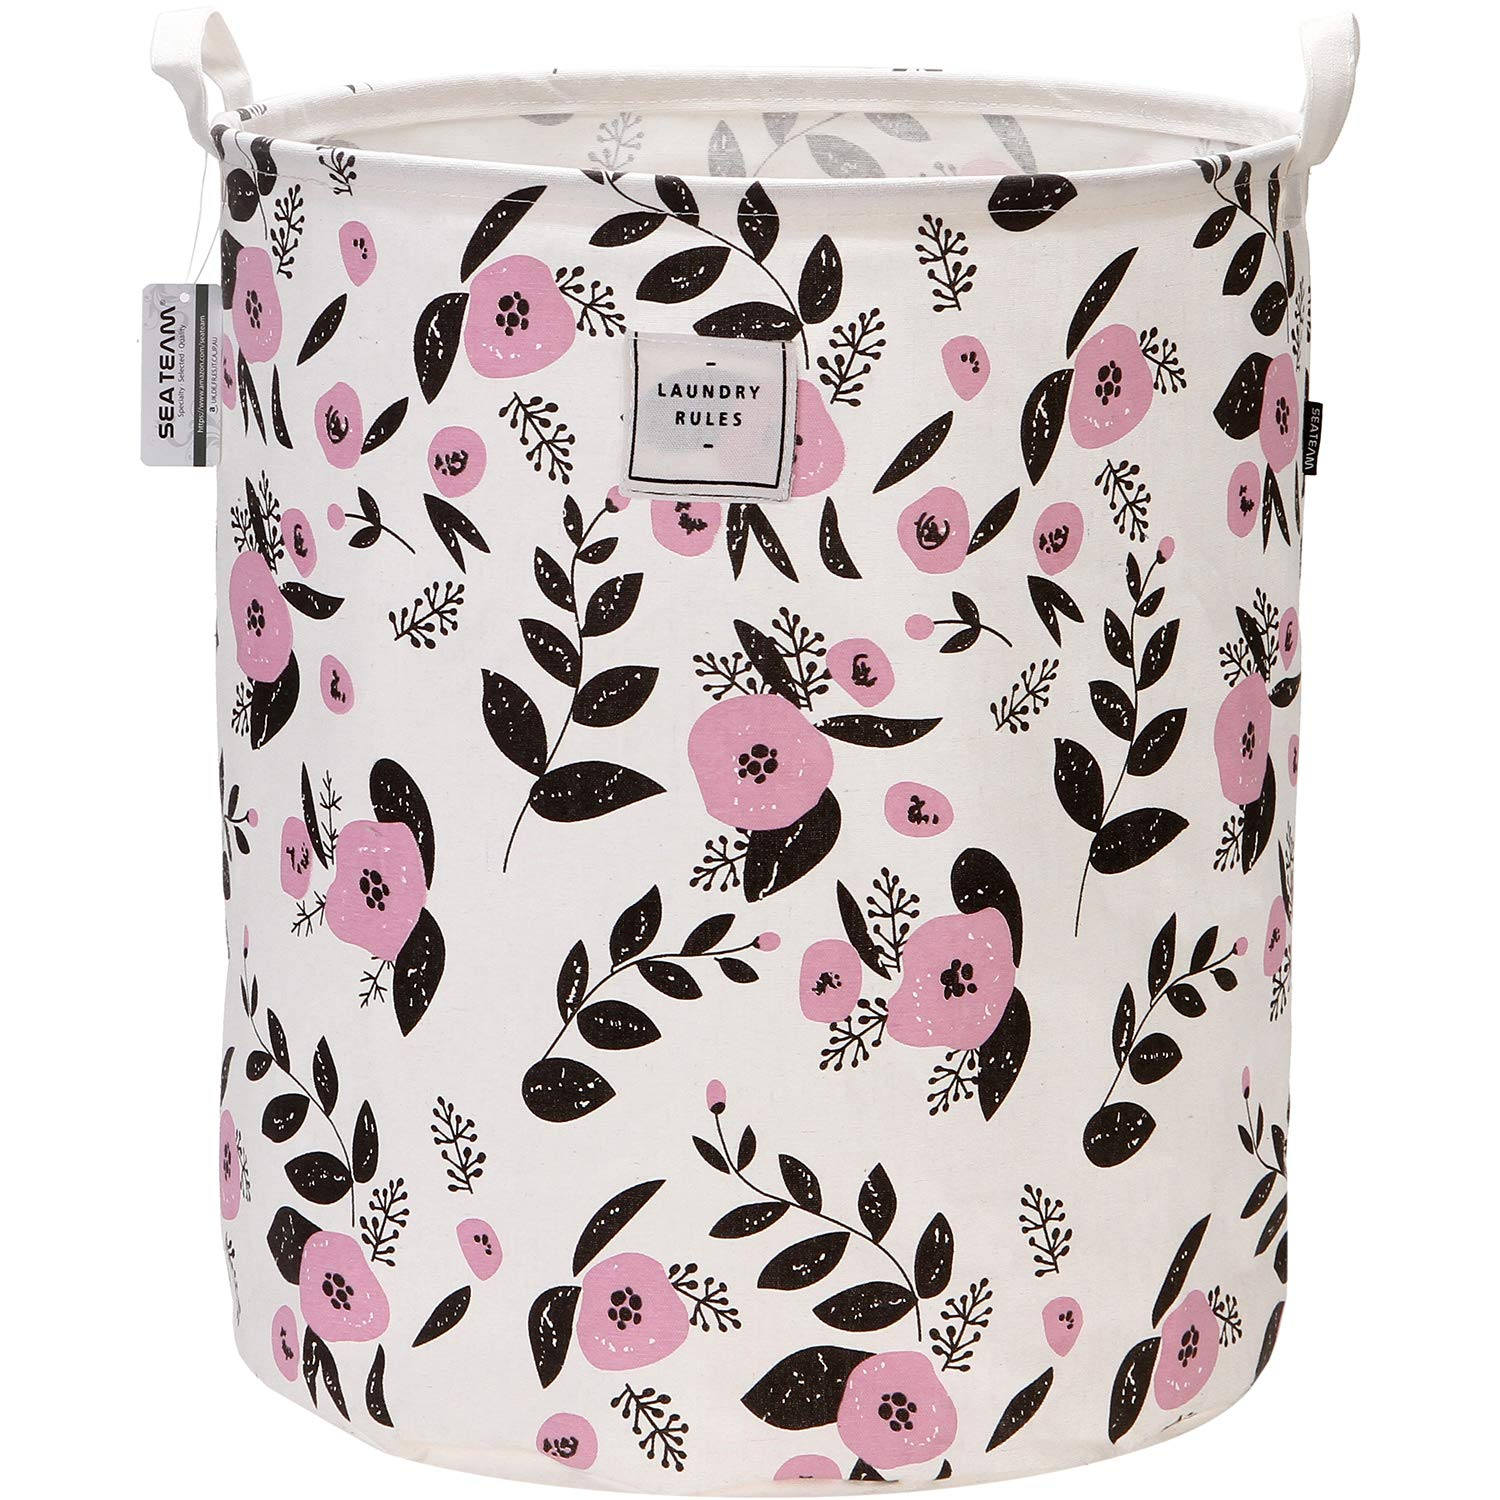 "Sea Team 19.7"" x 15.7"" Large Sized Folding Cylindric Canvas Fabric Laundry Hamper Storage Basket with Floral Pattern, Pink & Black"